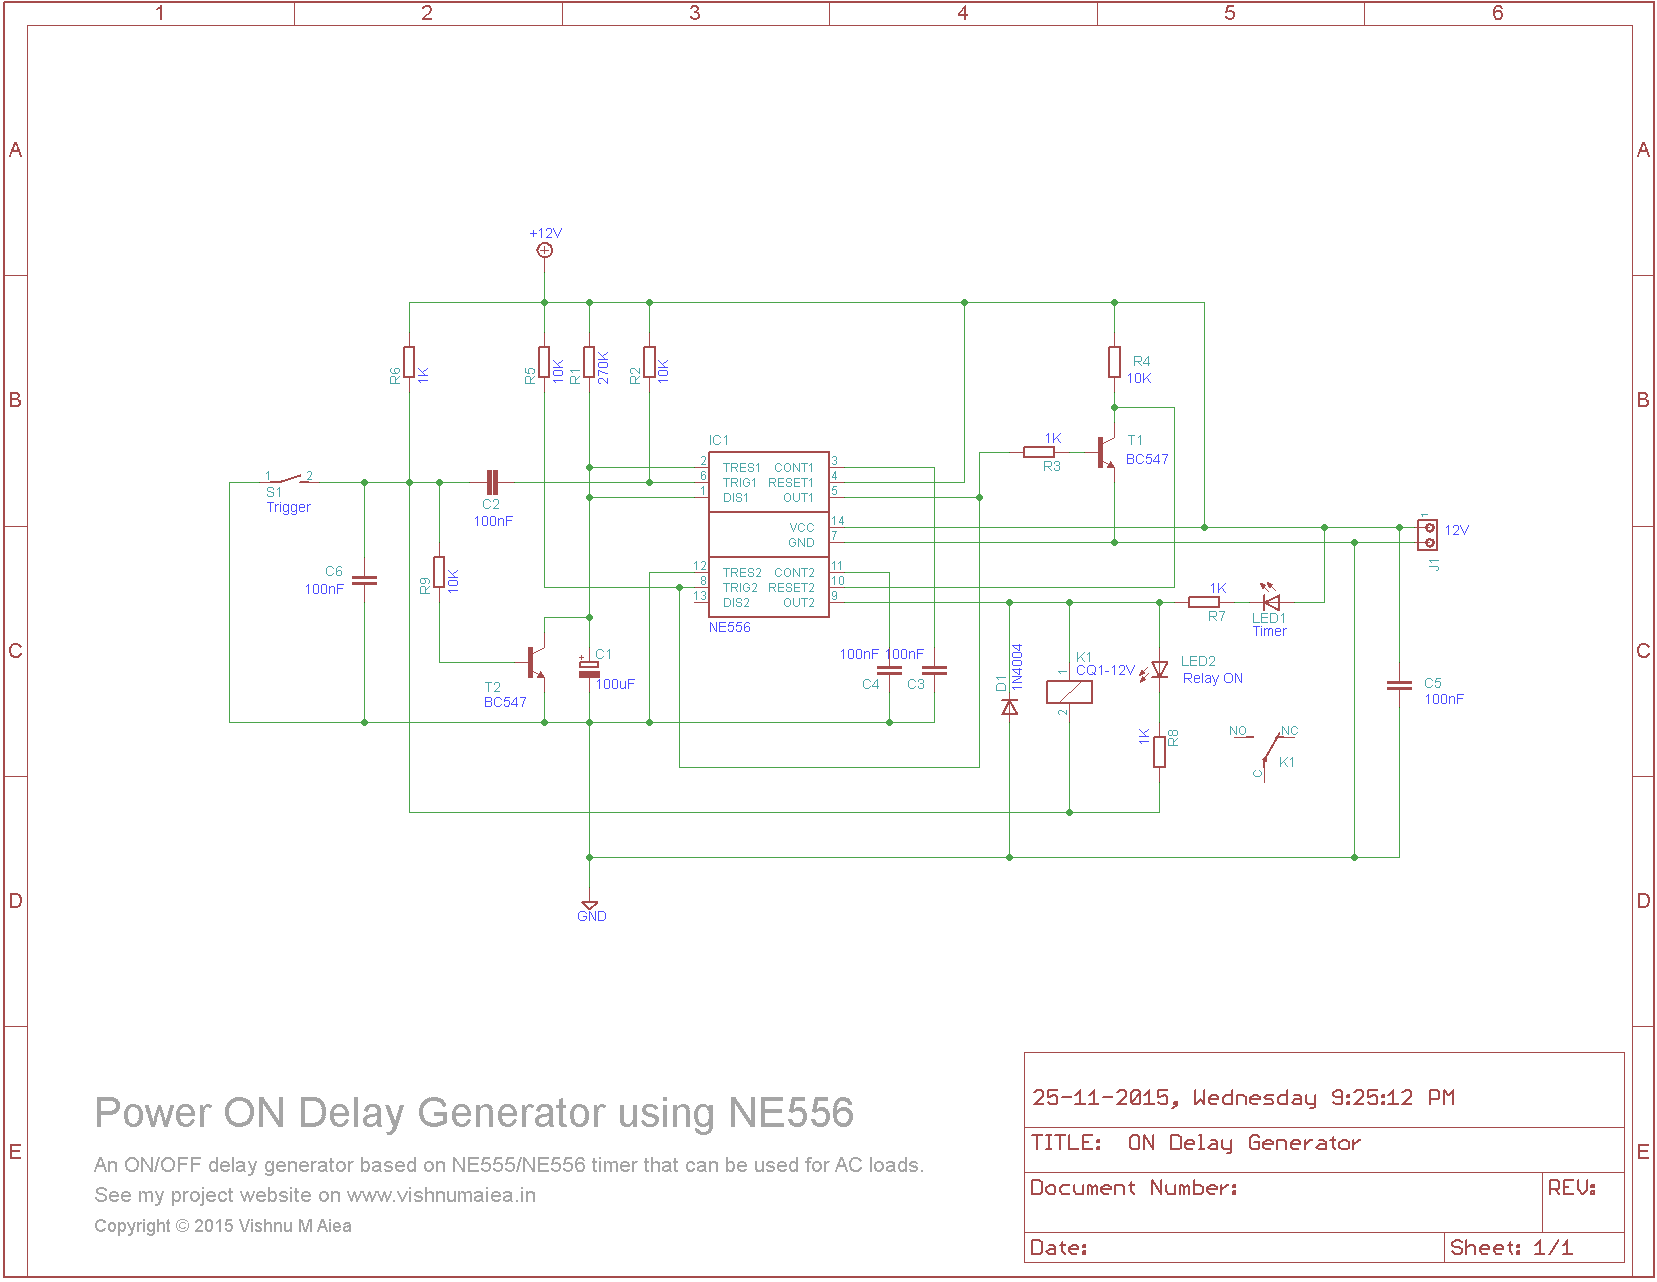 power on delay generator circuit using NE556 schematic